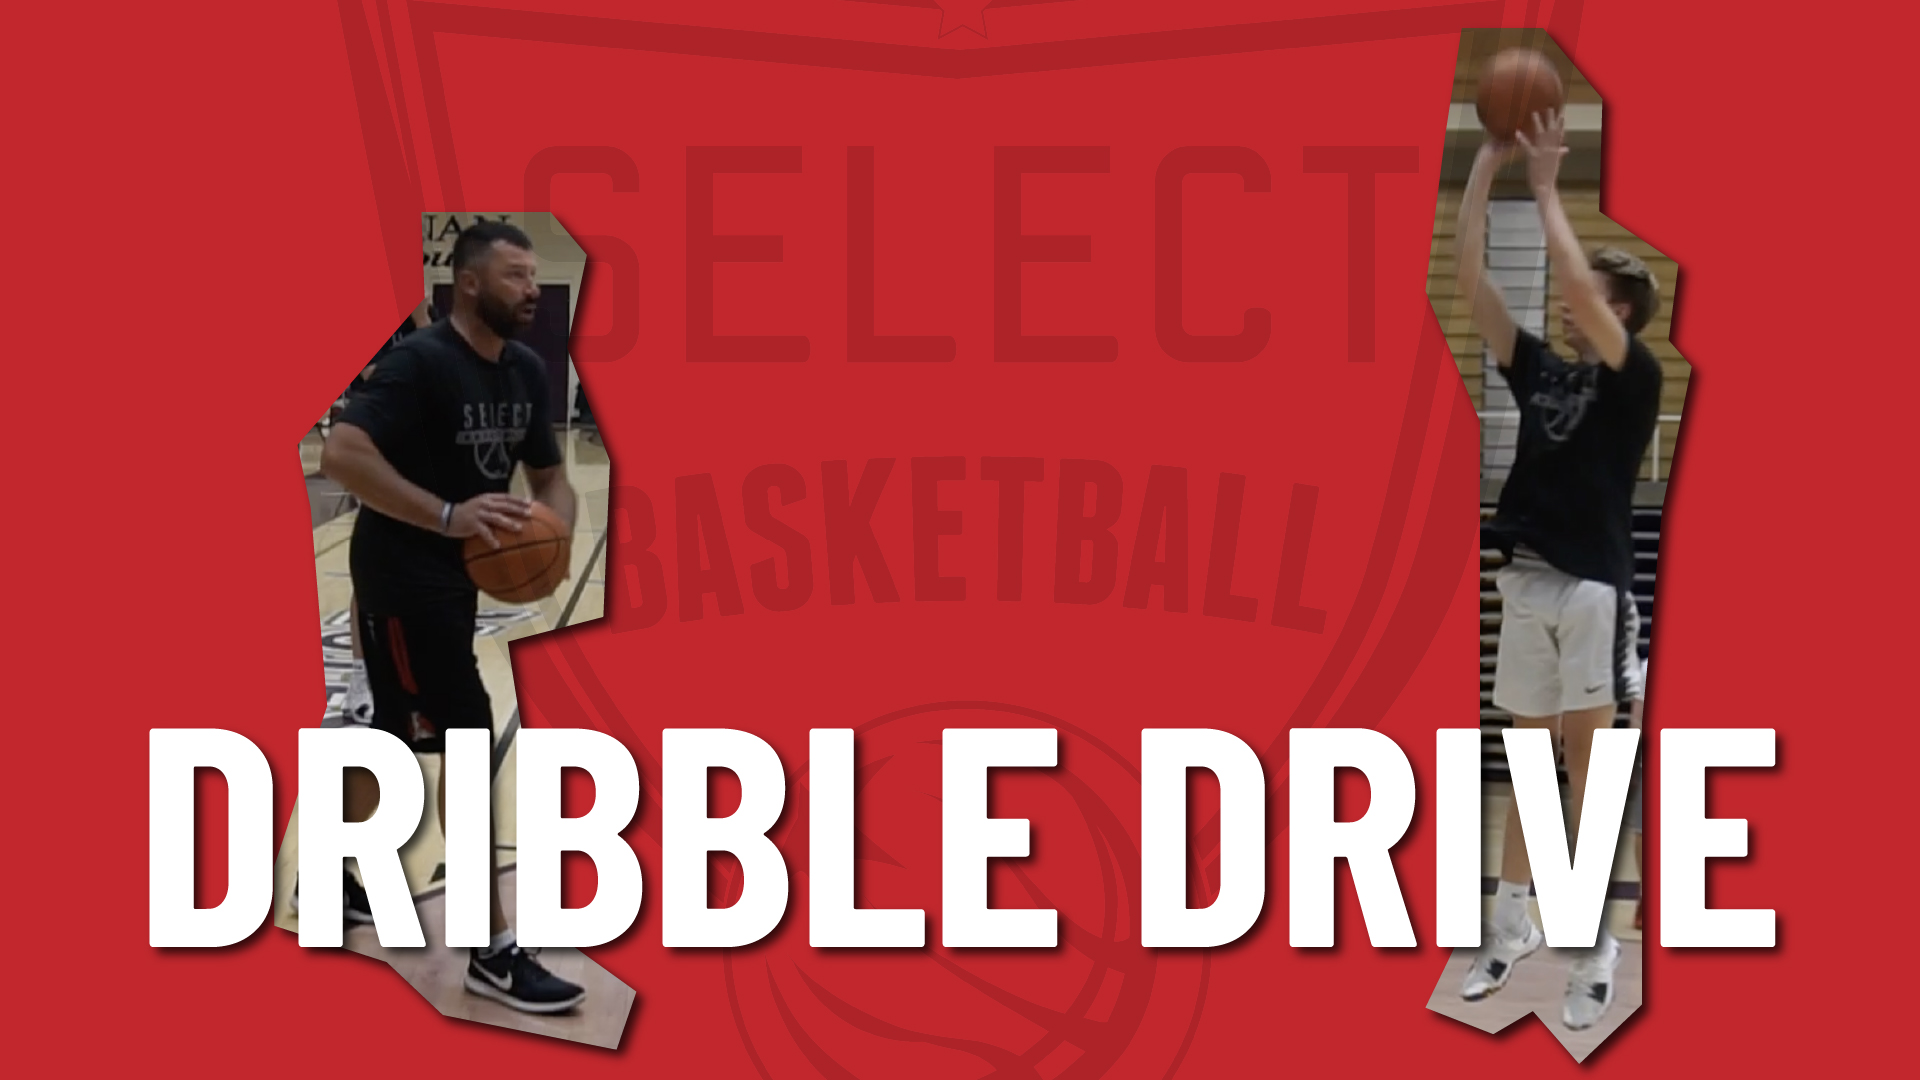 This basketball drill incorporates multiple skill sets including dribbling, kick-out passes, and drift passing & spacing.